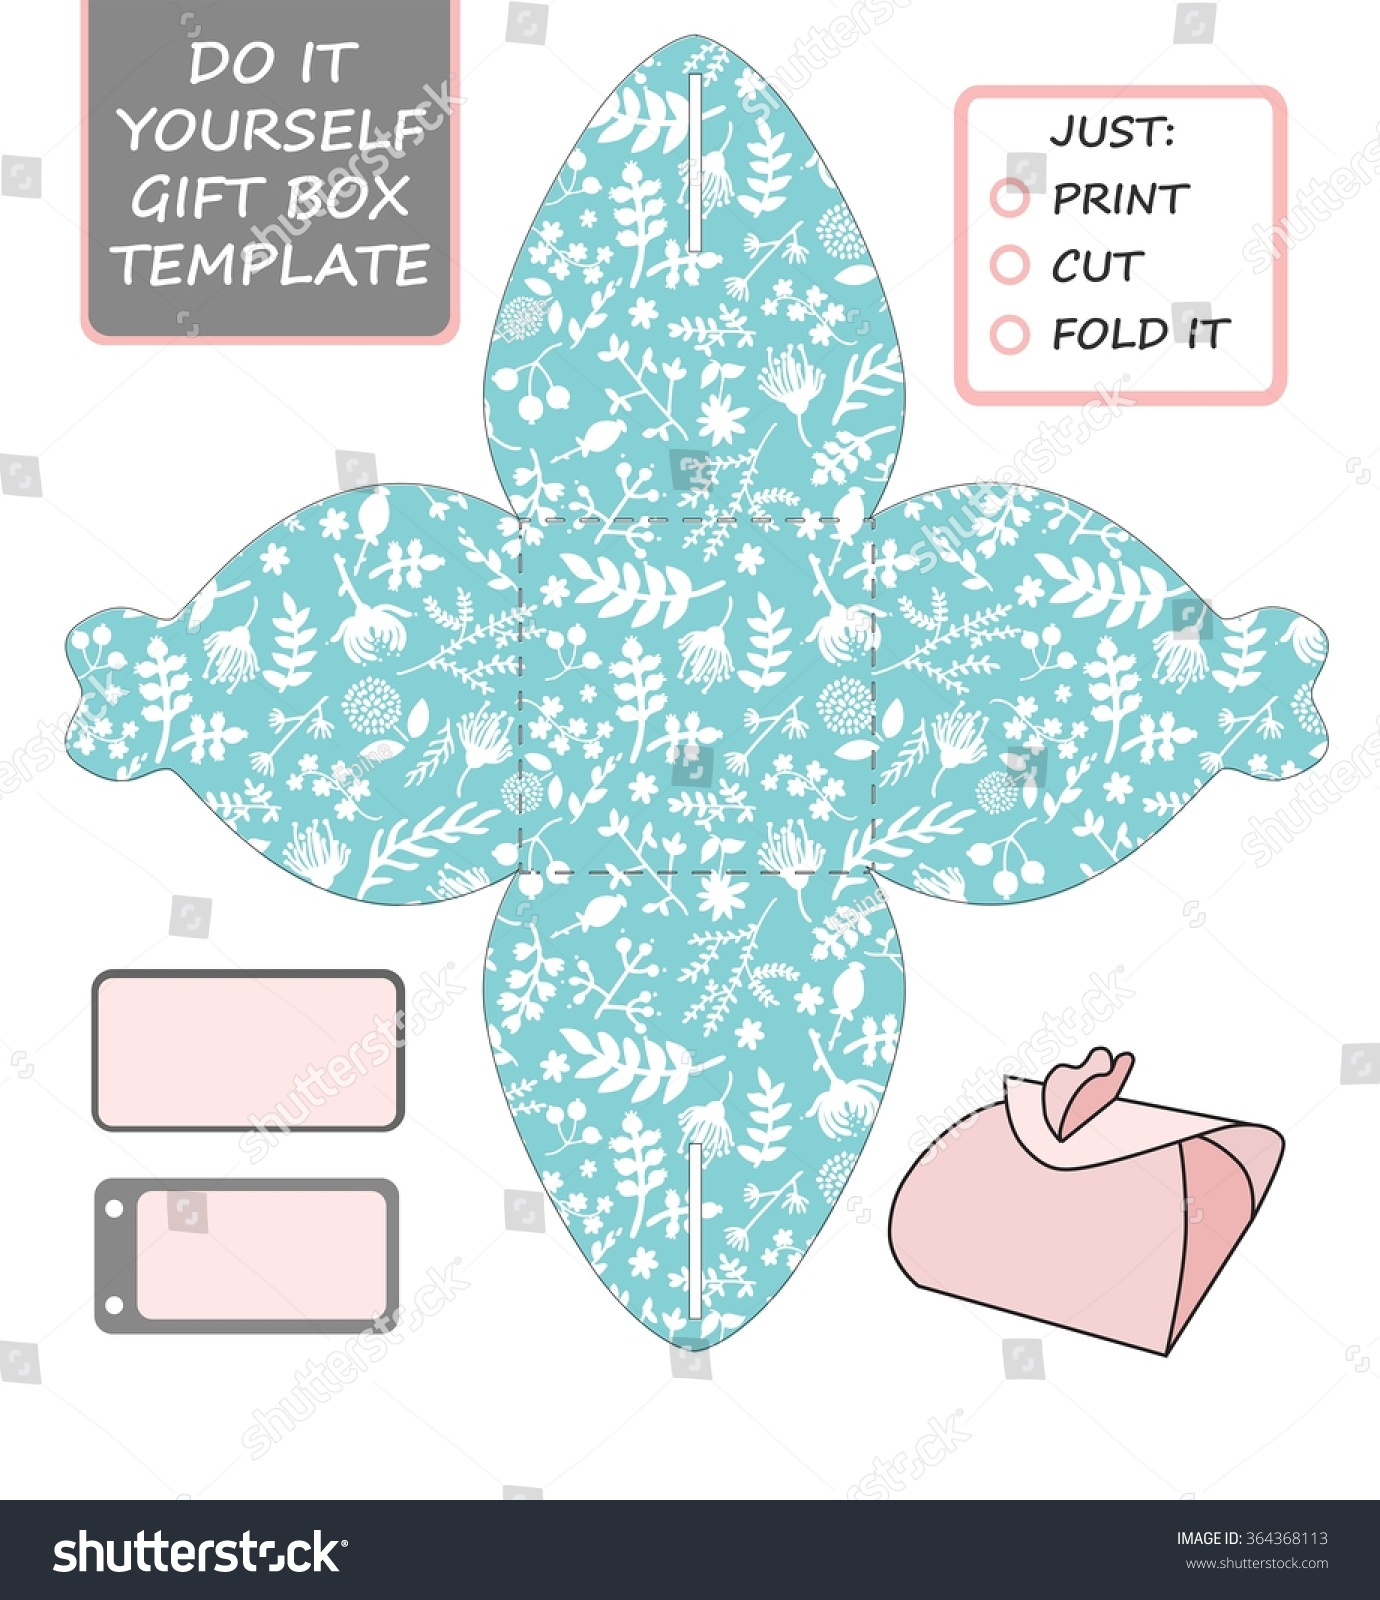 Favor gift box die cut box vectores en stock 364368113 shutterstock favor gift box die cut box template with tiffany blue and white floral pattern solutioingenieria Images